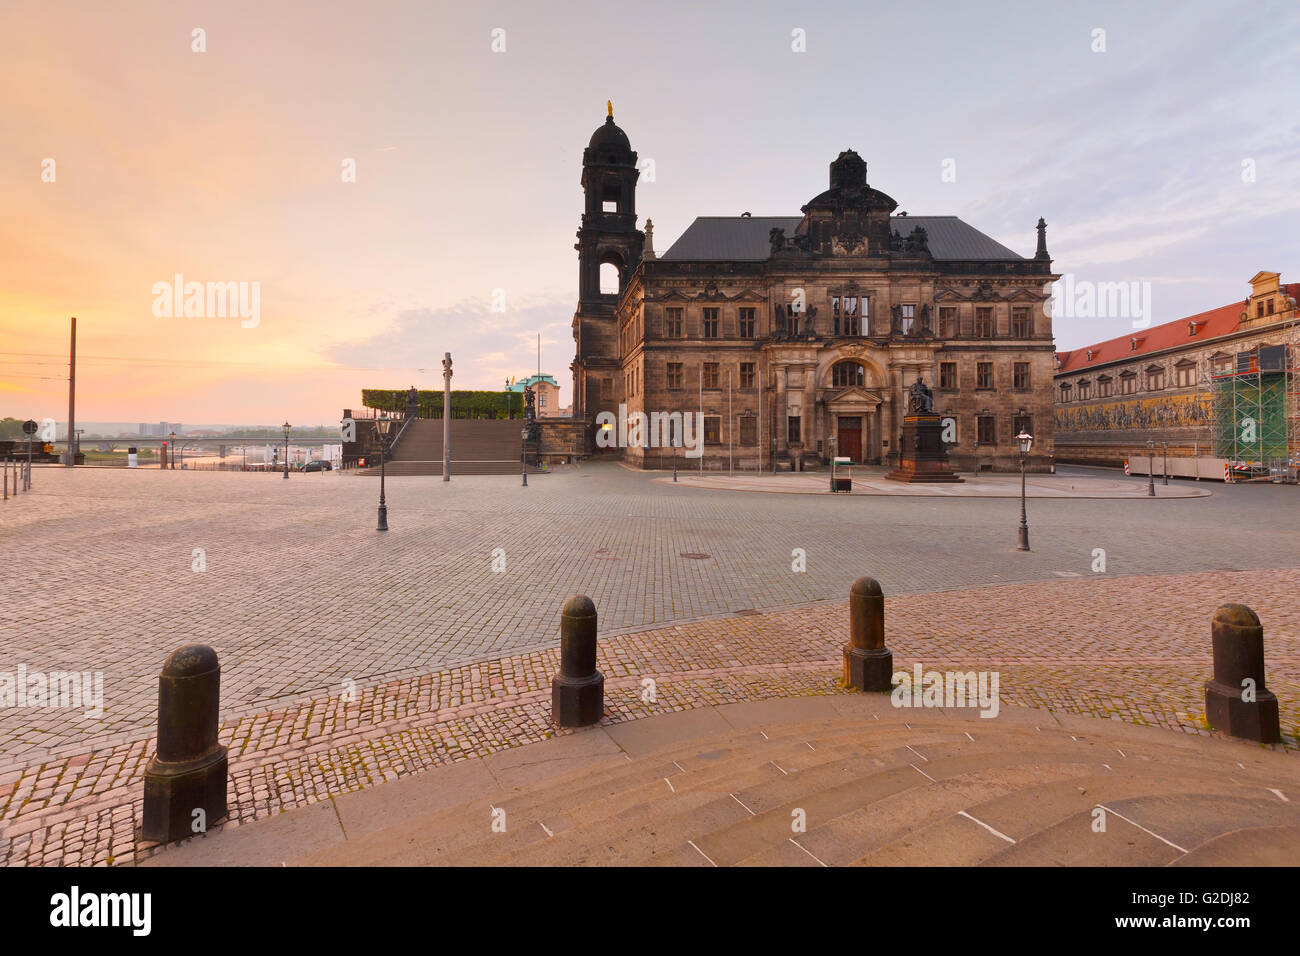 View of the higher regional court in the old town of Dresden, Germany. - Stock Image